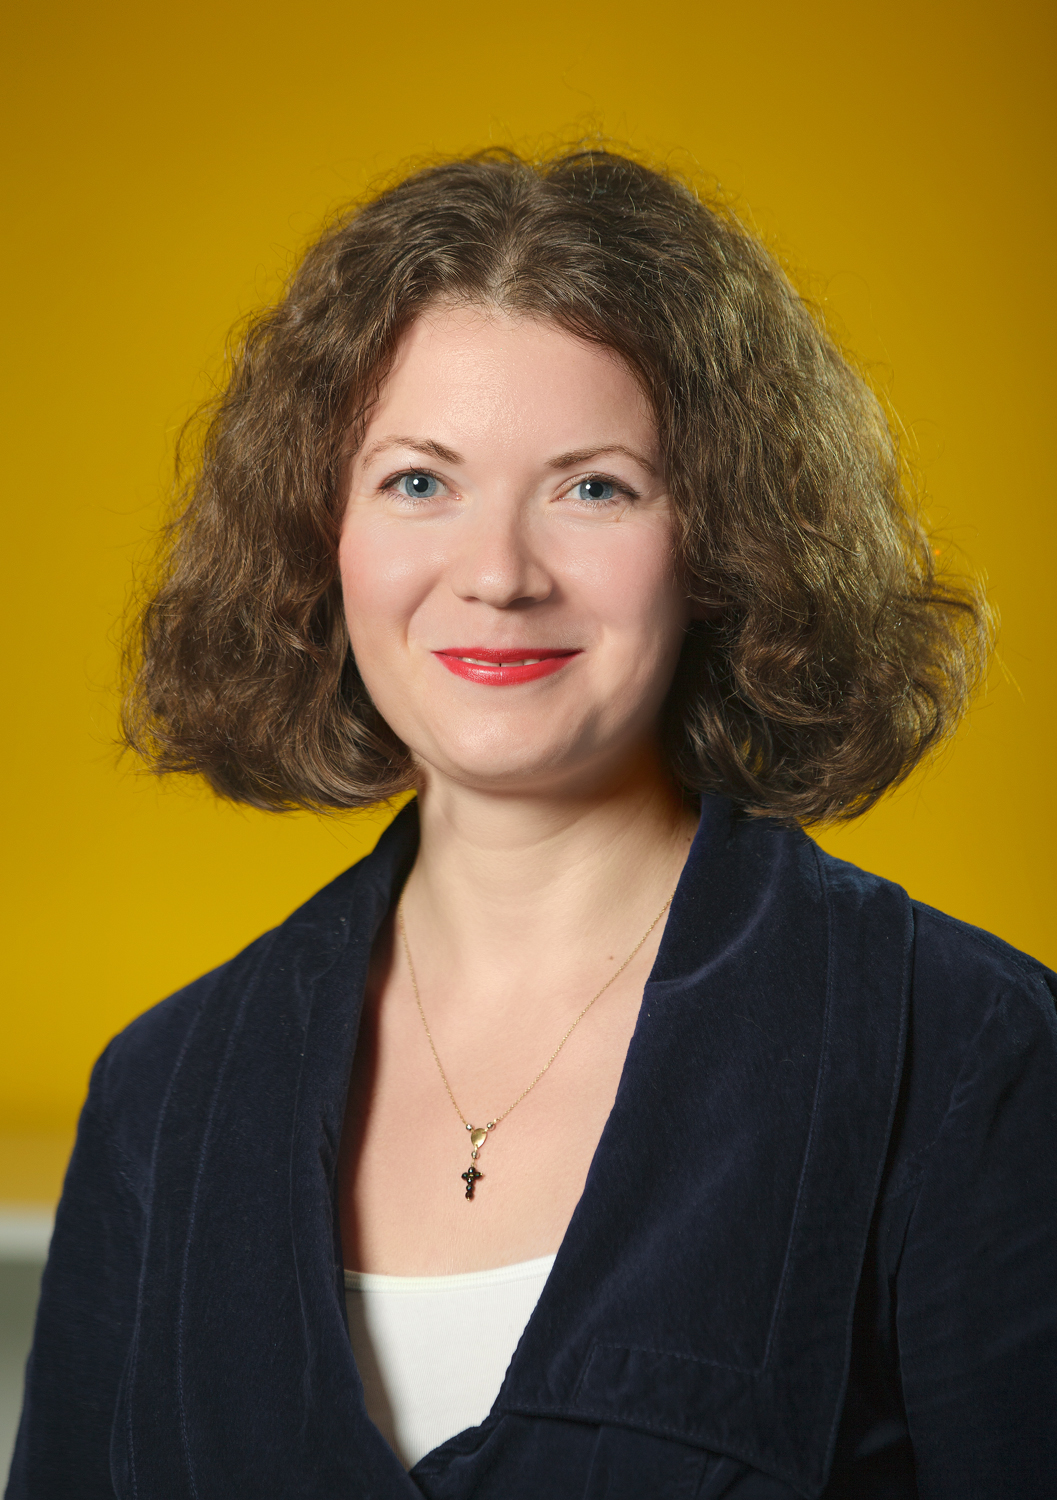 Mihaela Matei, Supervising Marketing Associate, EY Romania